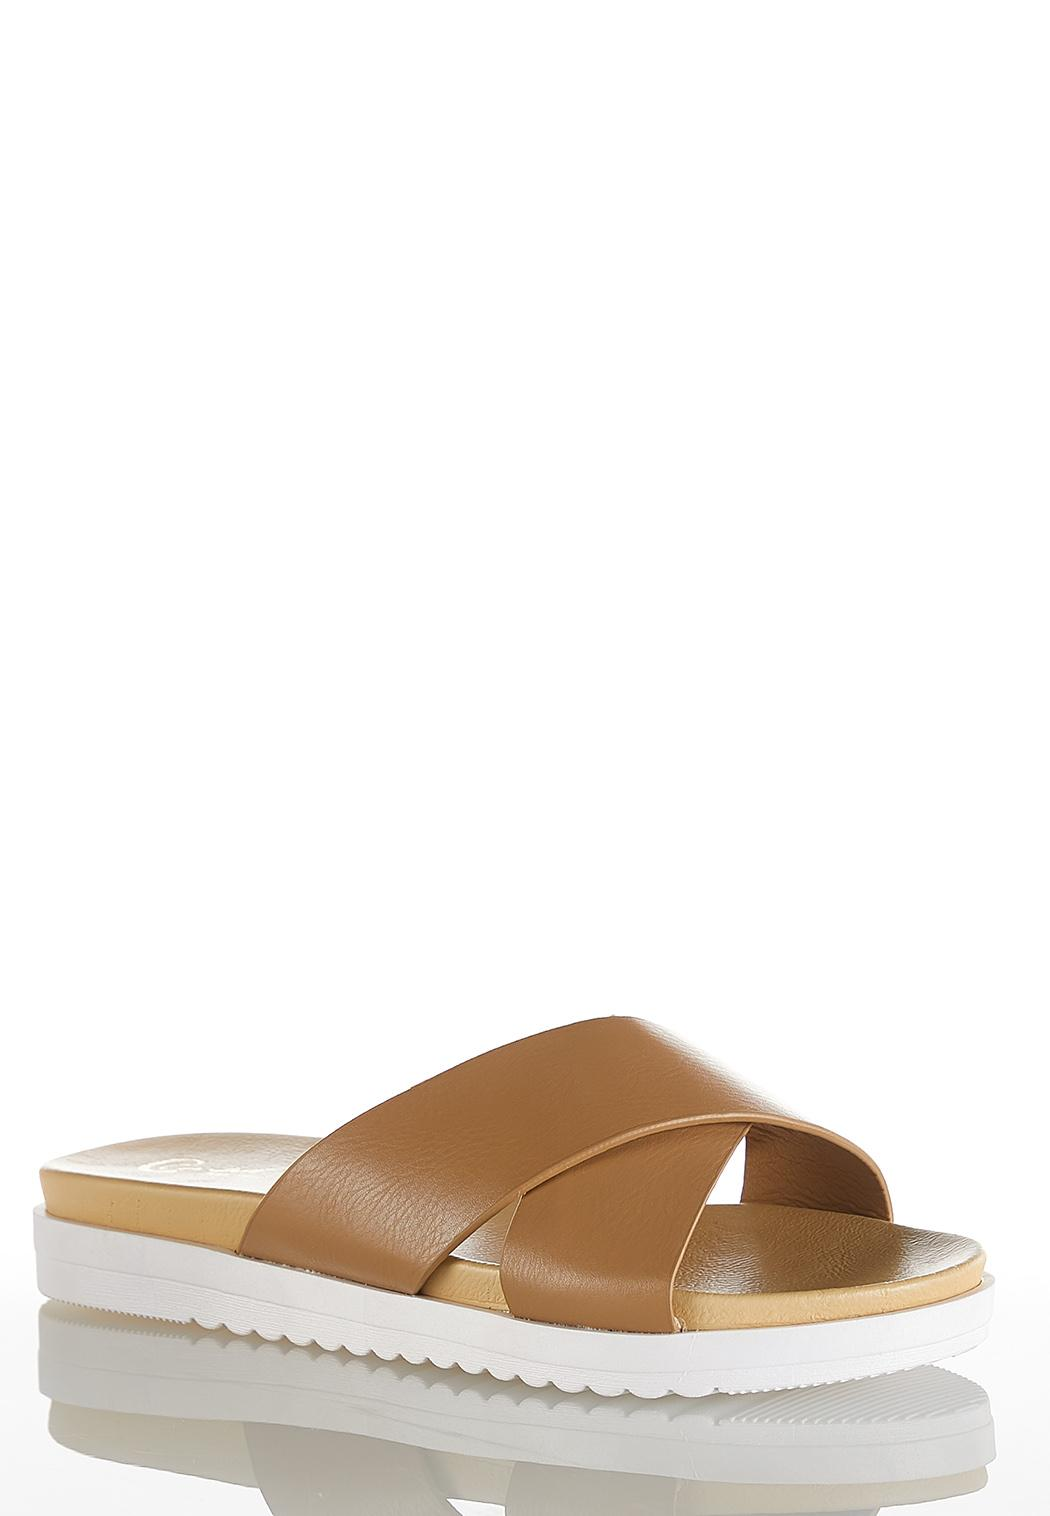 Cross Band White Sole Sandals